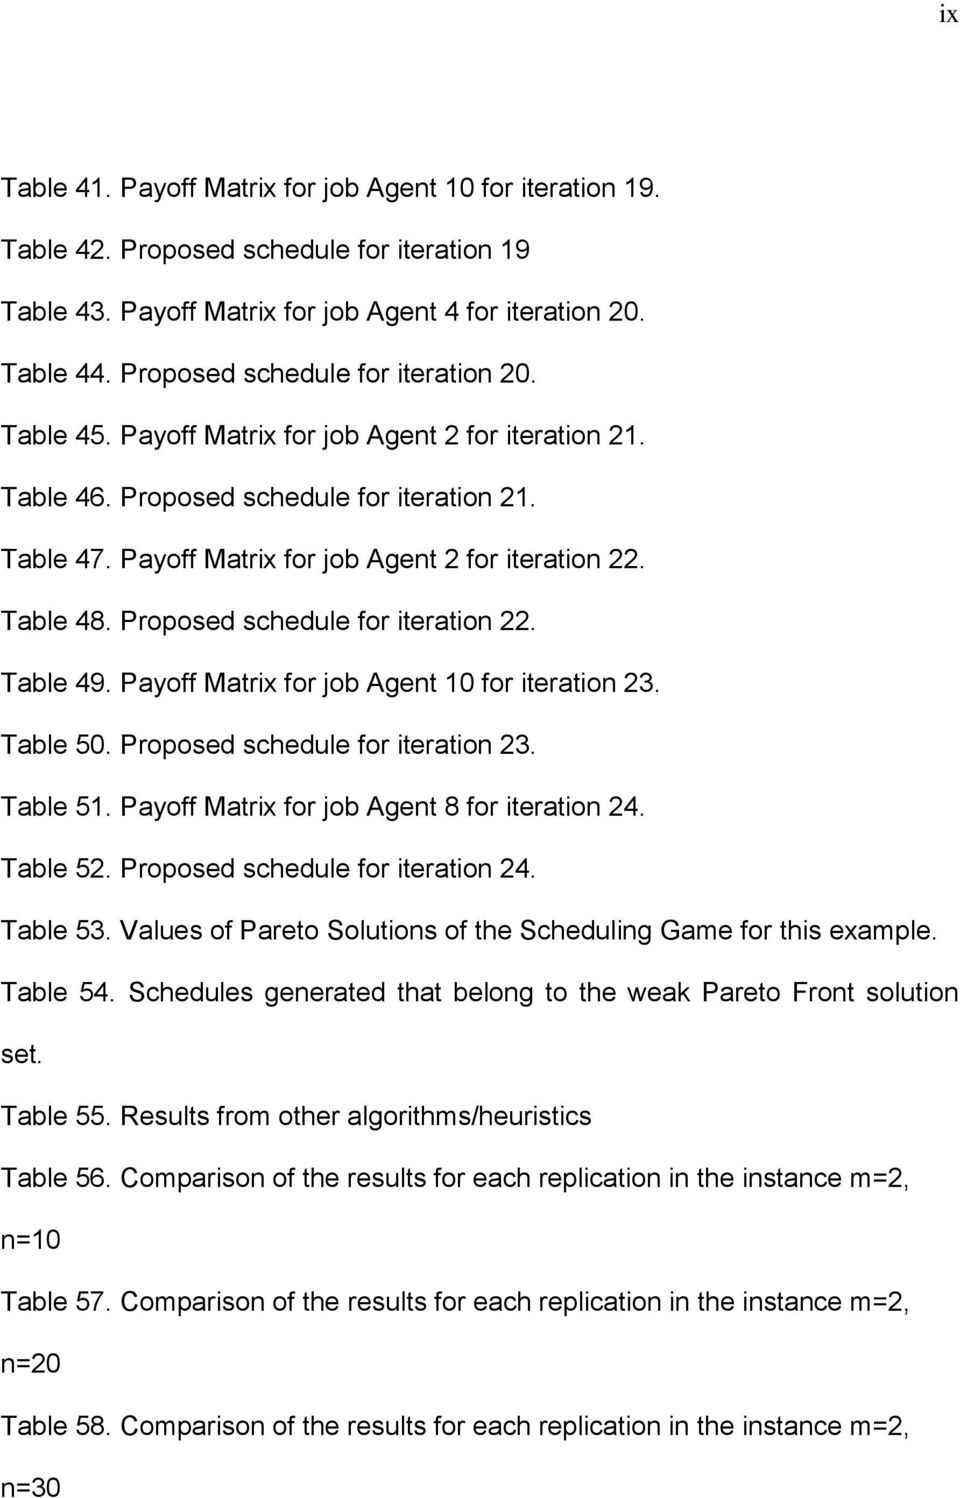 Table 49. Payoff Matrx for job Agent 10 for teraton 23. Table 50. Proposed schedule for teraton 23. Table 51. Payoff Matrx for job Agent 8 for teraton 24. Table 52. Proposed schedule for teraton 24.